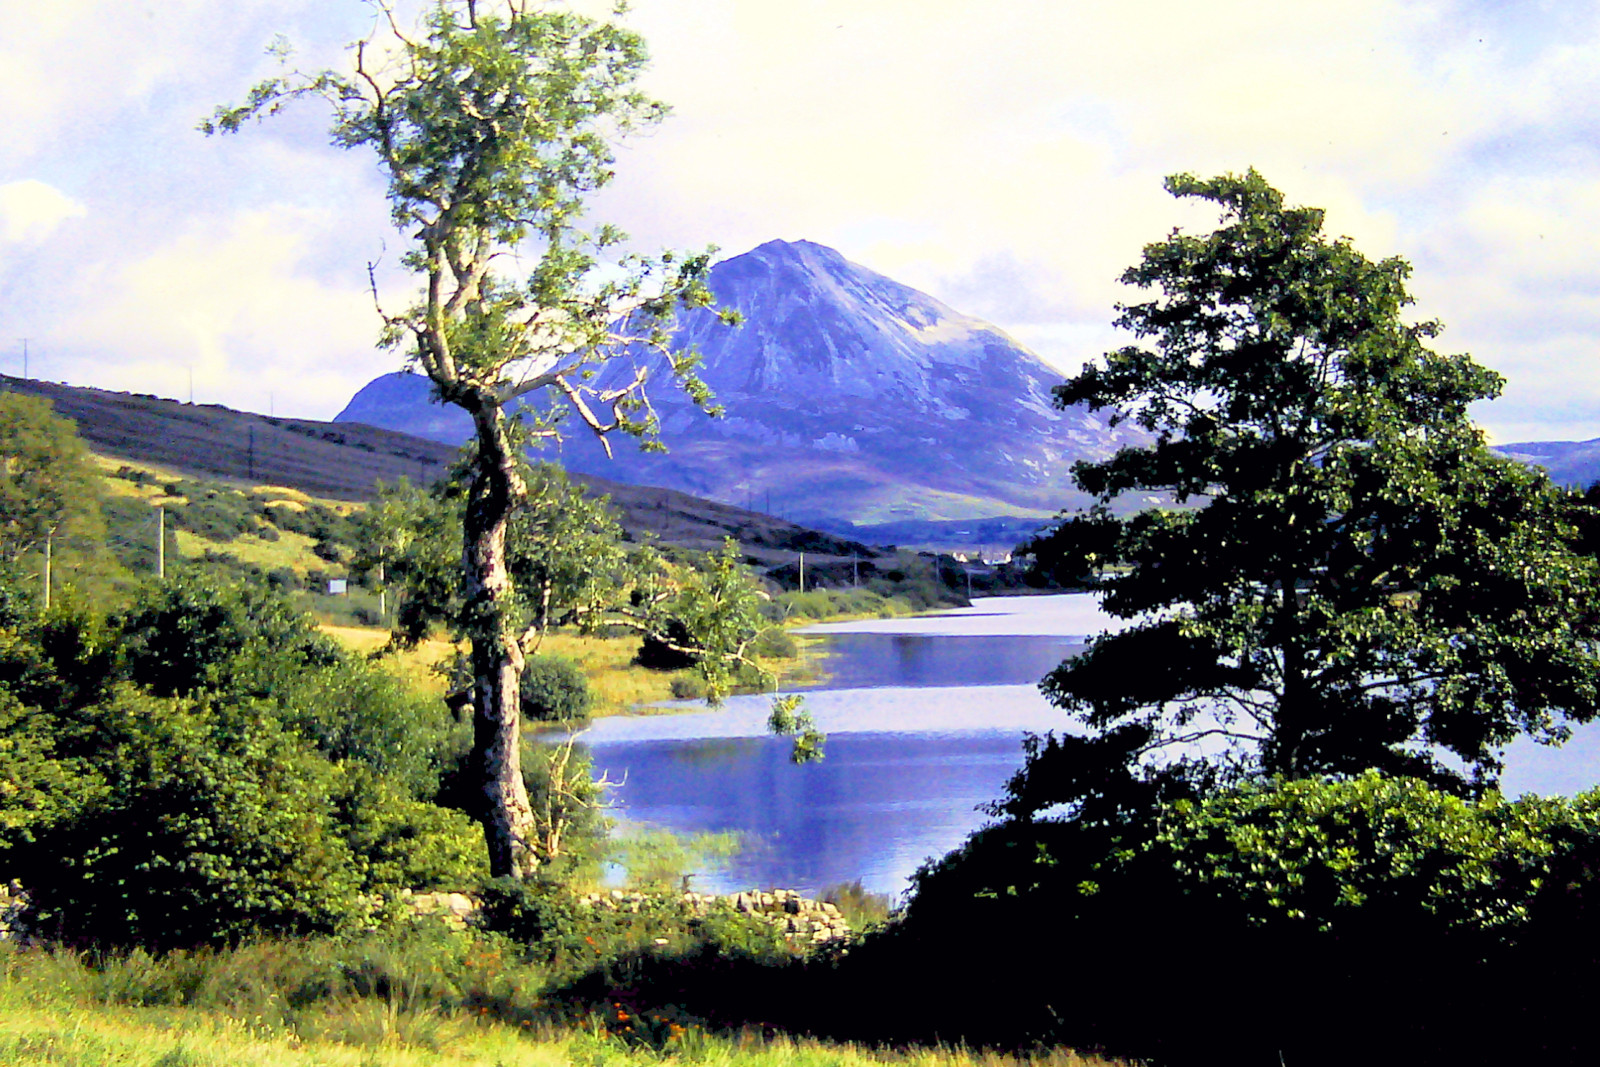 PDI - Mount Errigal by Eddie Stone (7 marks)